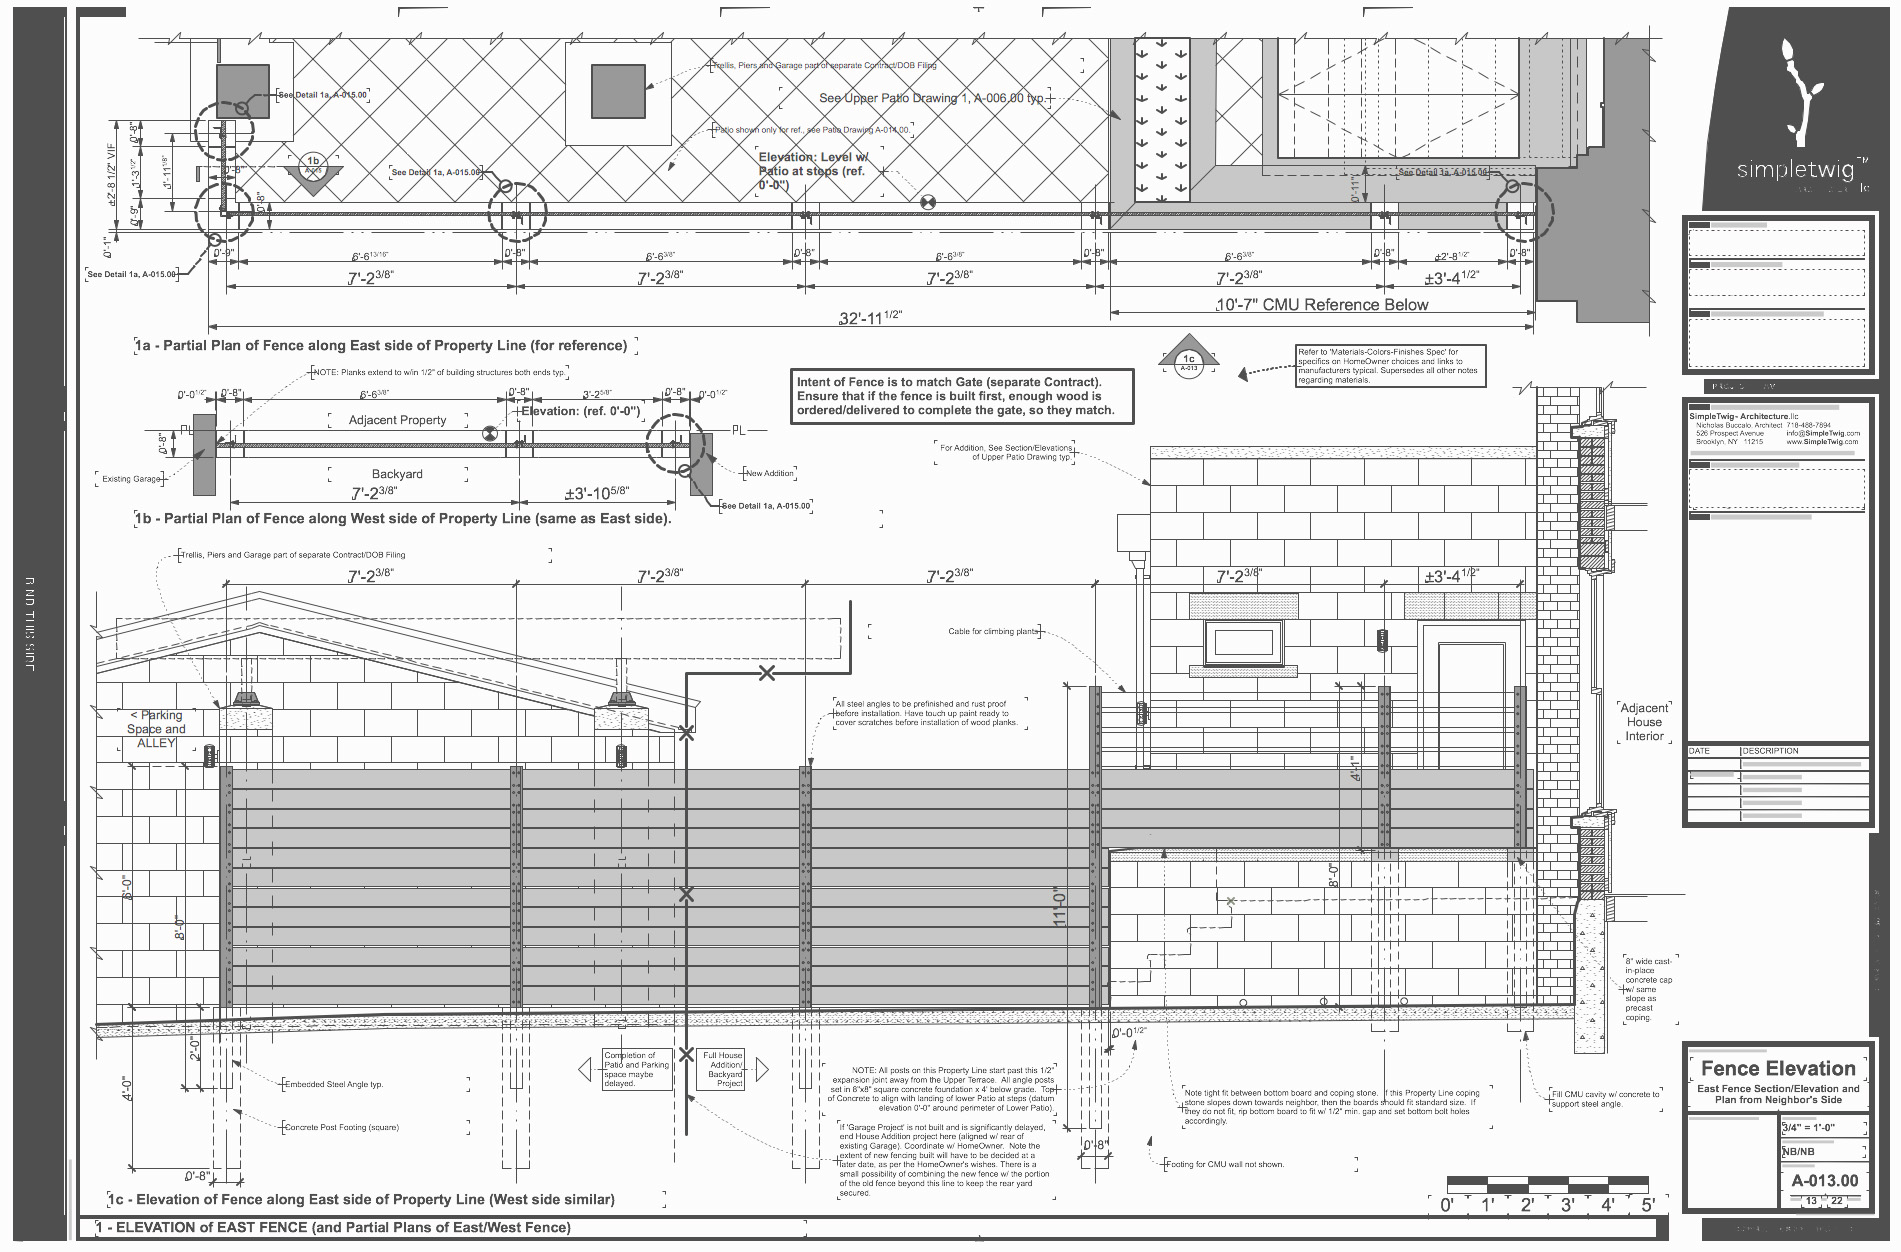 hight resolution of simpletwig architecture llc resource library the schematic for this is below along with some construction details